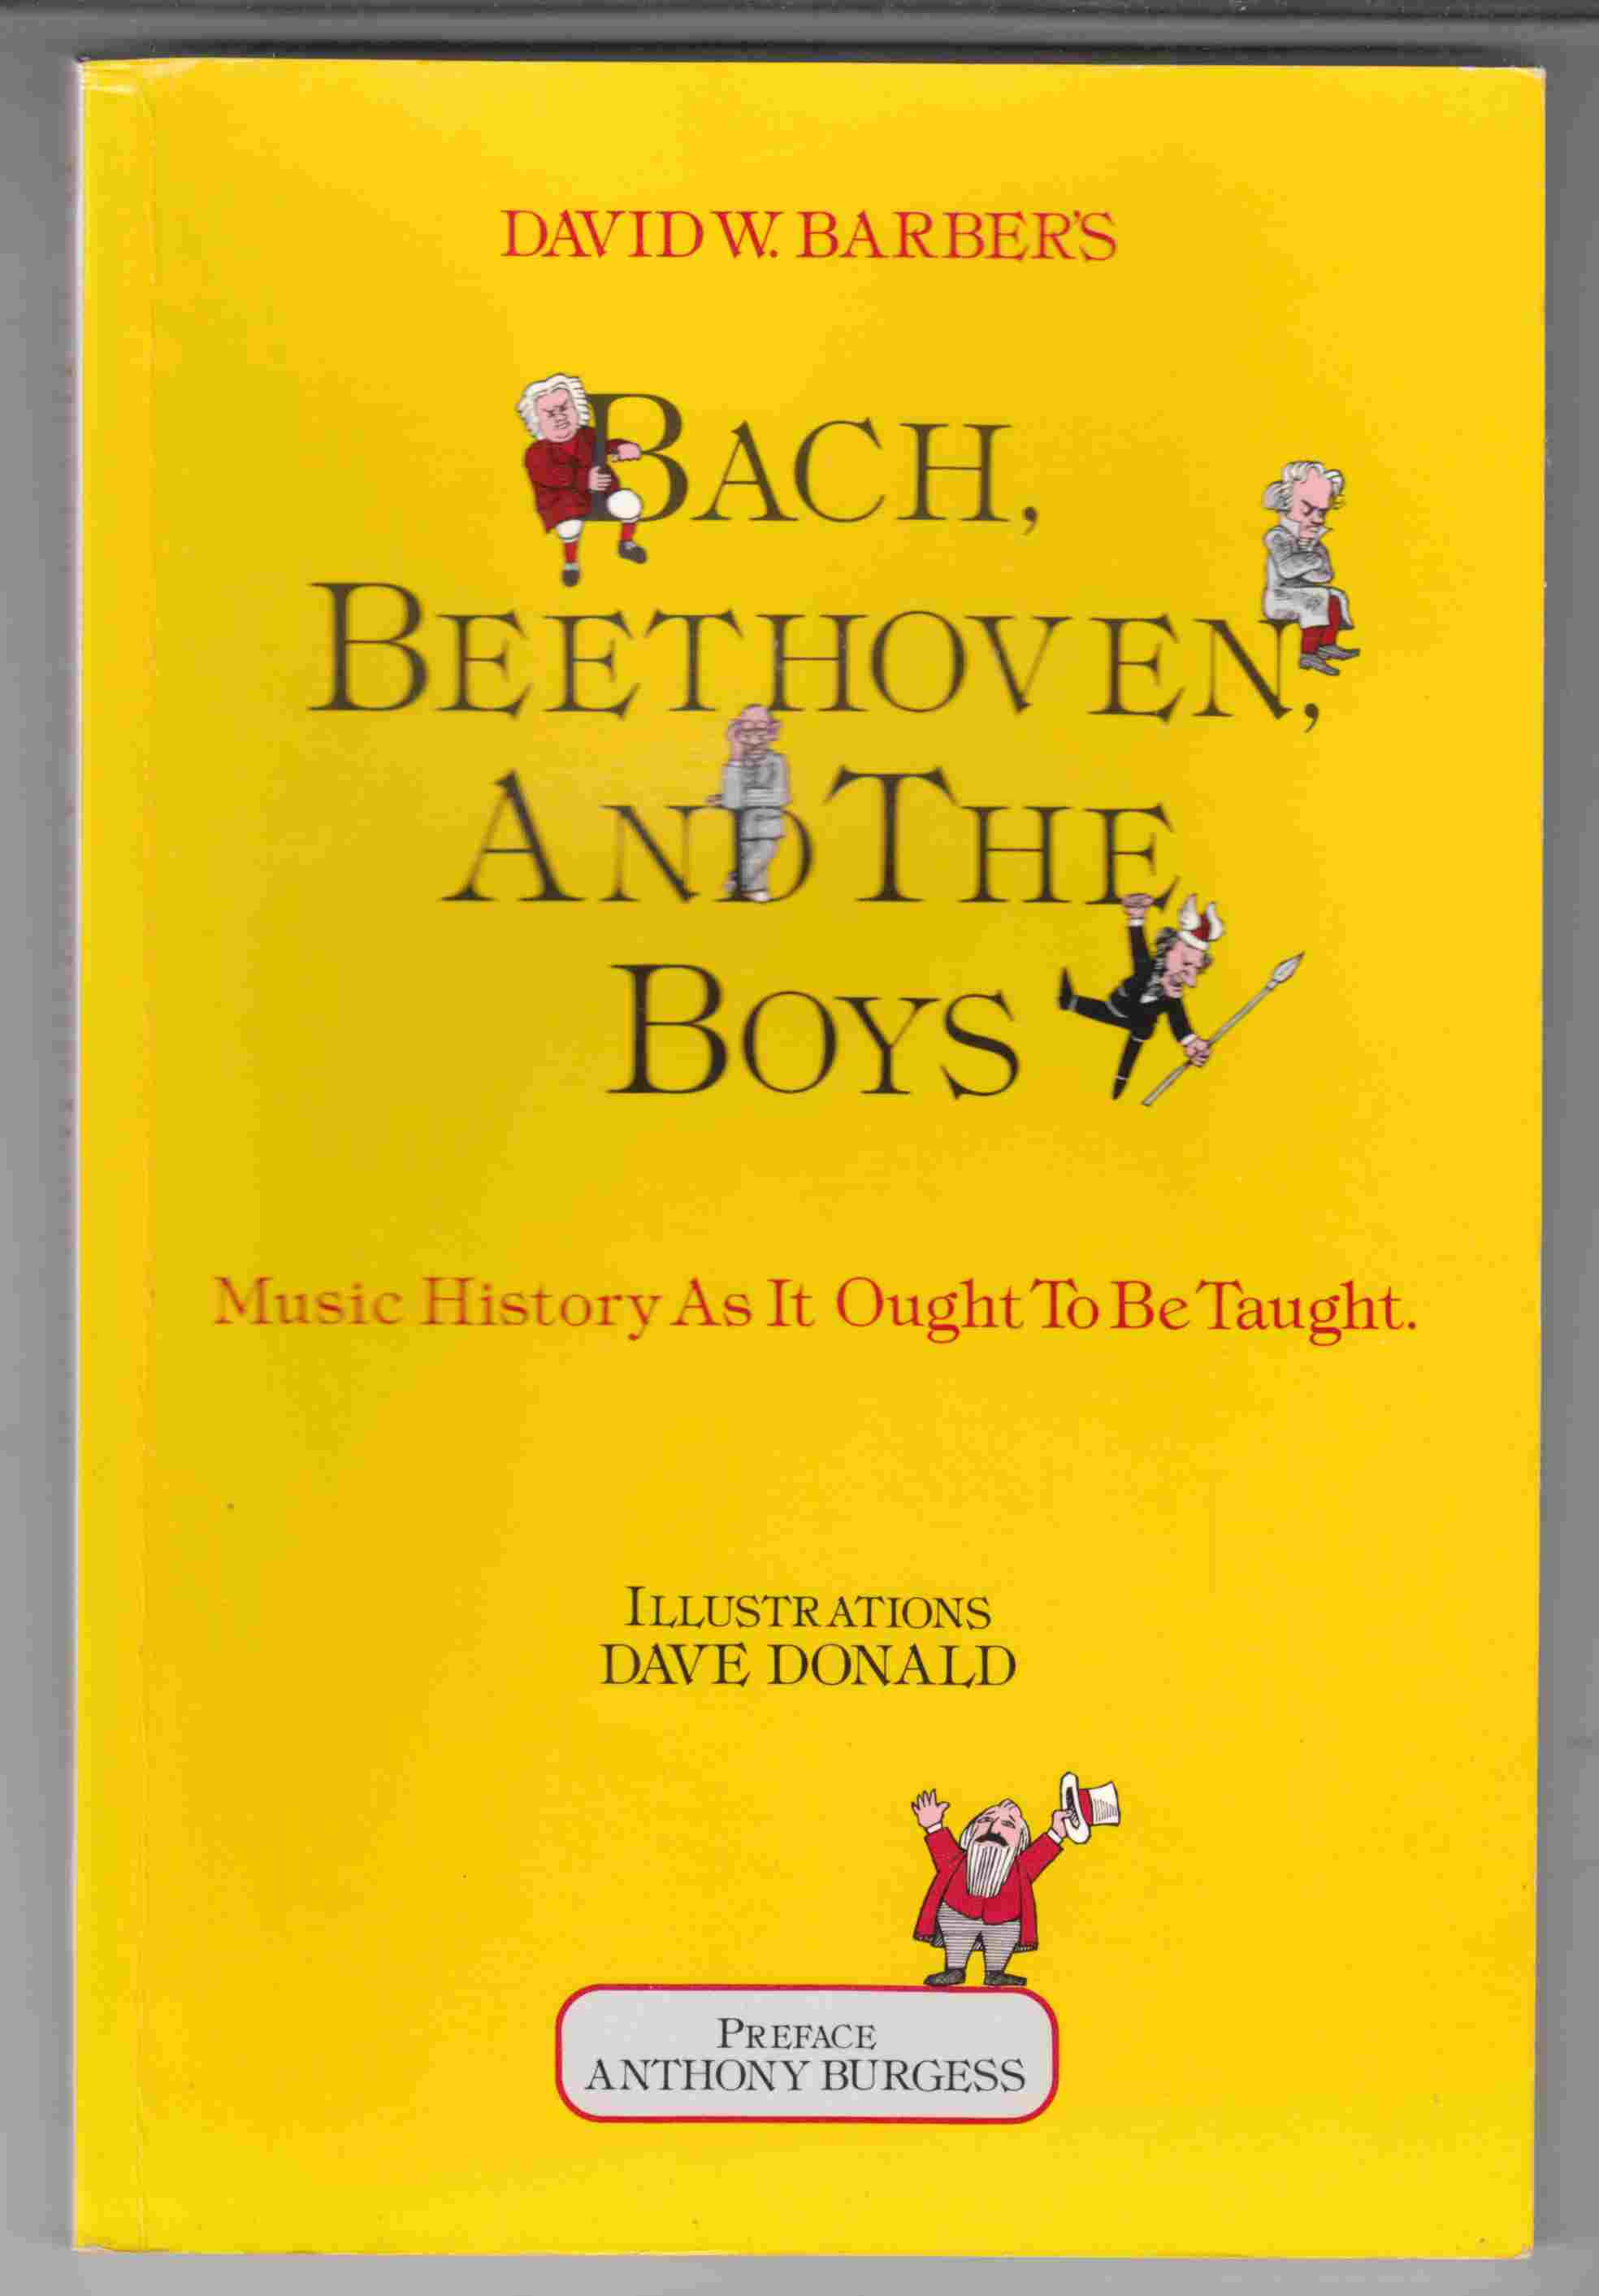 Image for Bach, Beethoven and the Boys: Music History as it Ought to be Taught